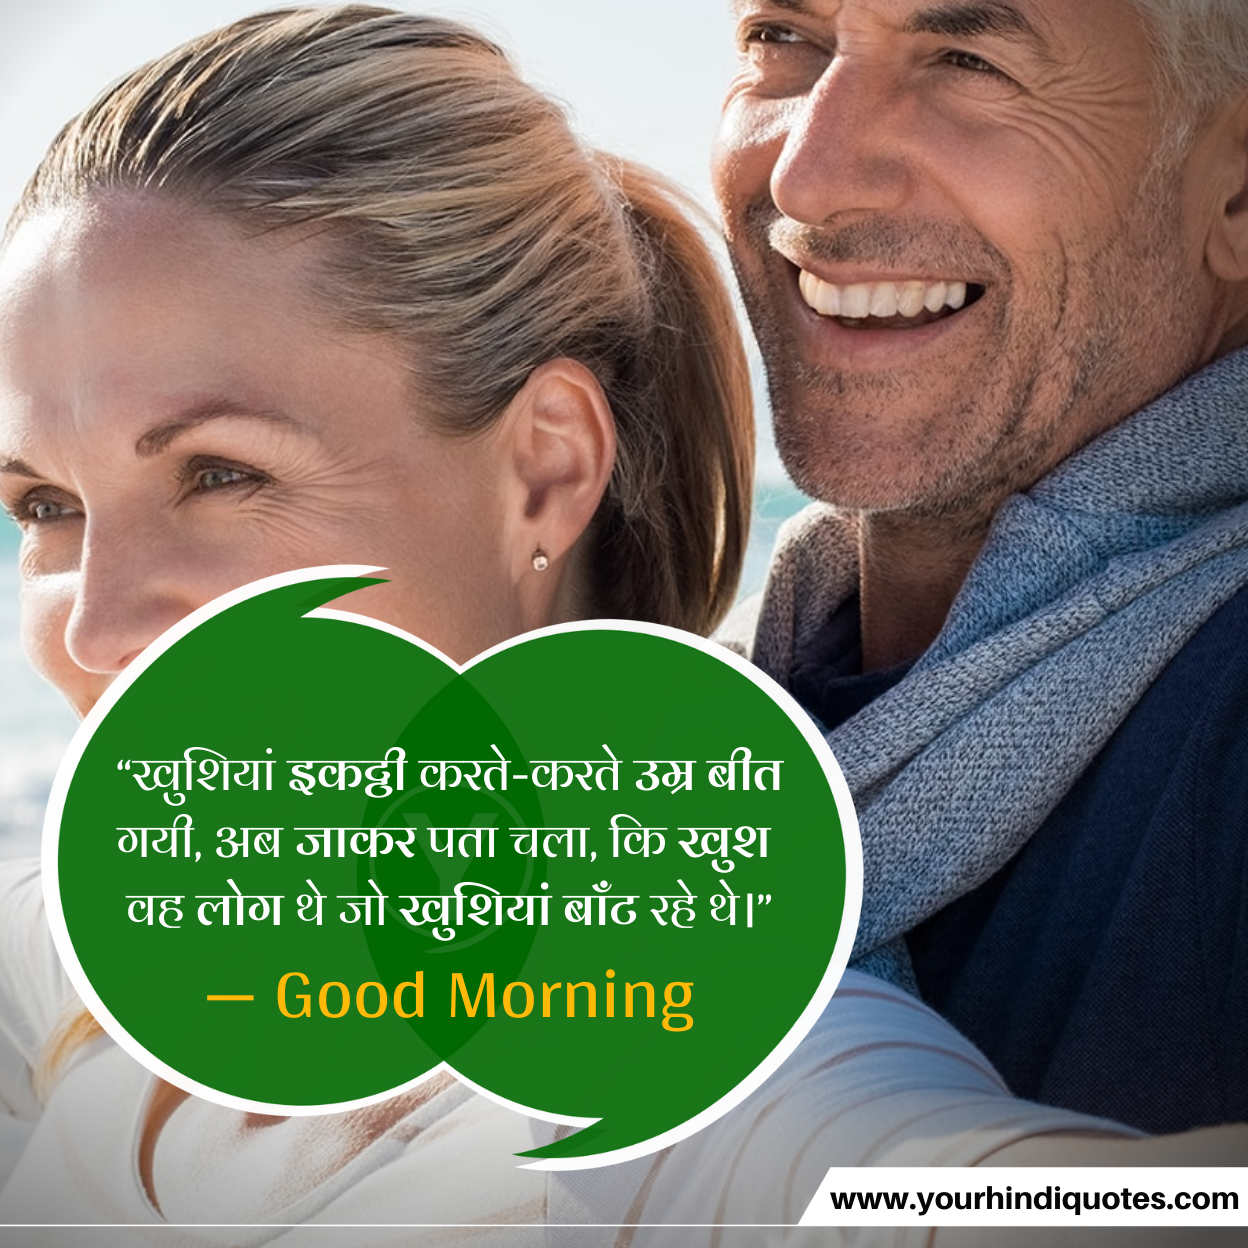 Good Morning Thoughts Pic